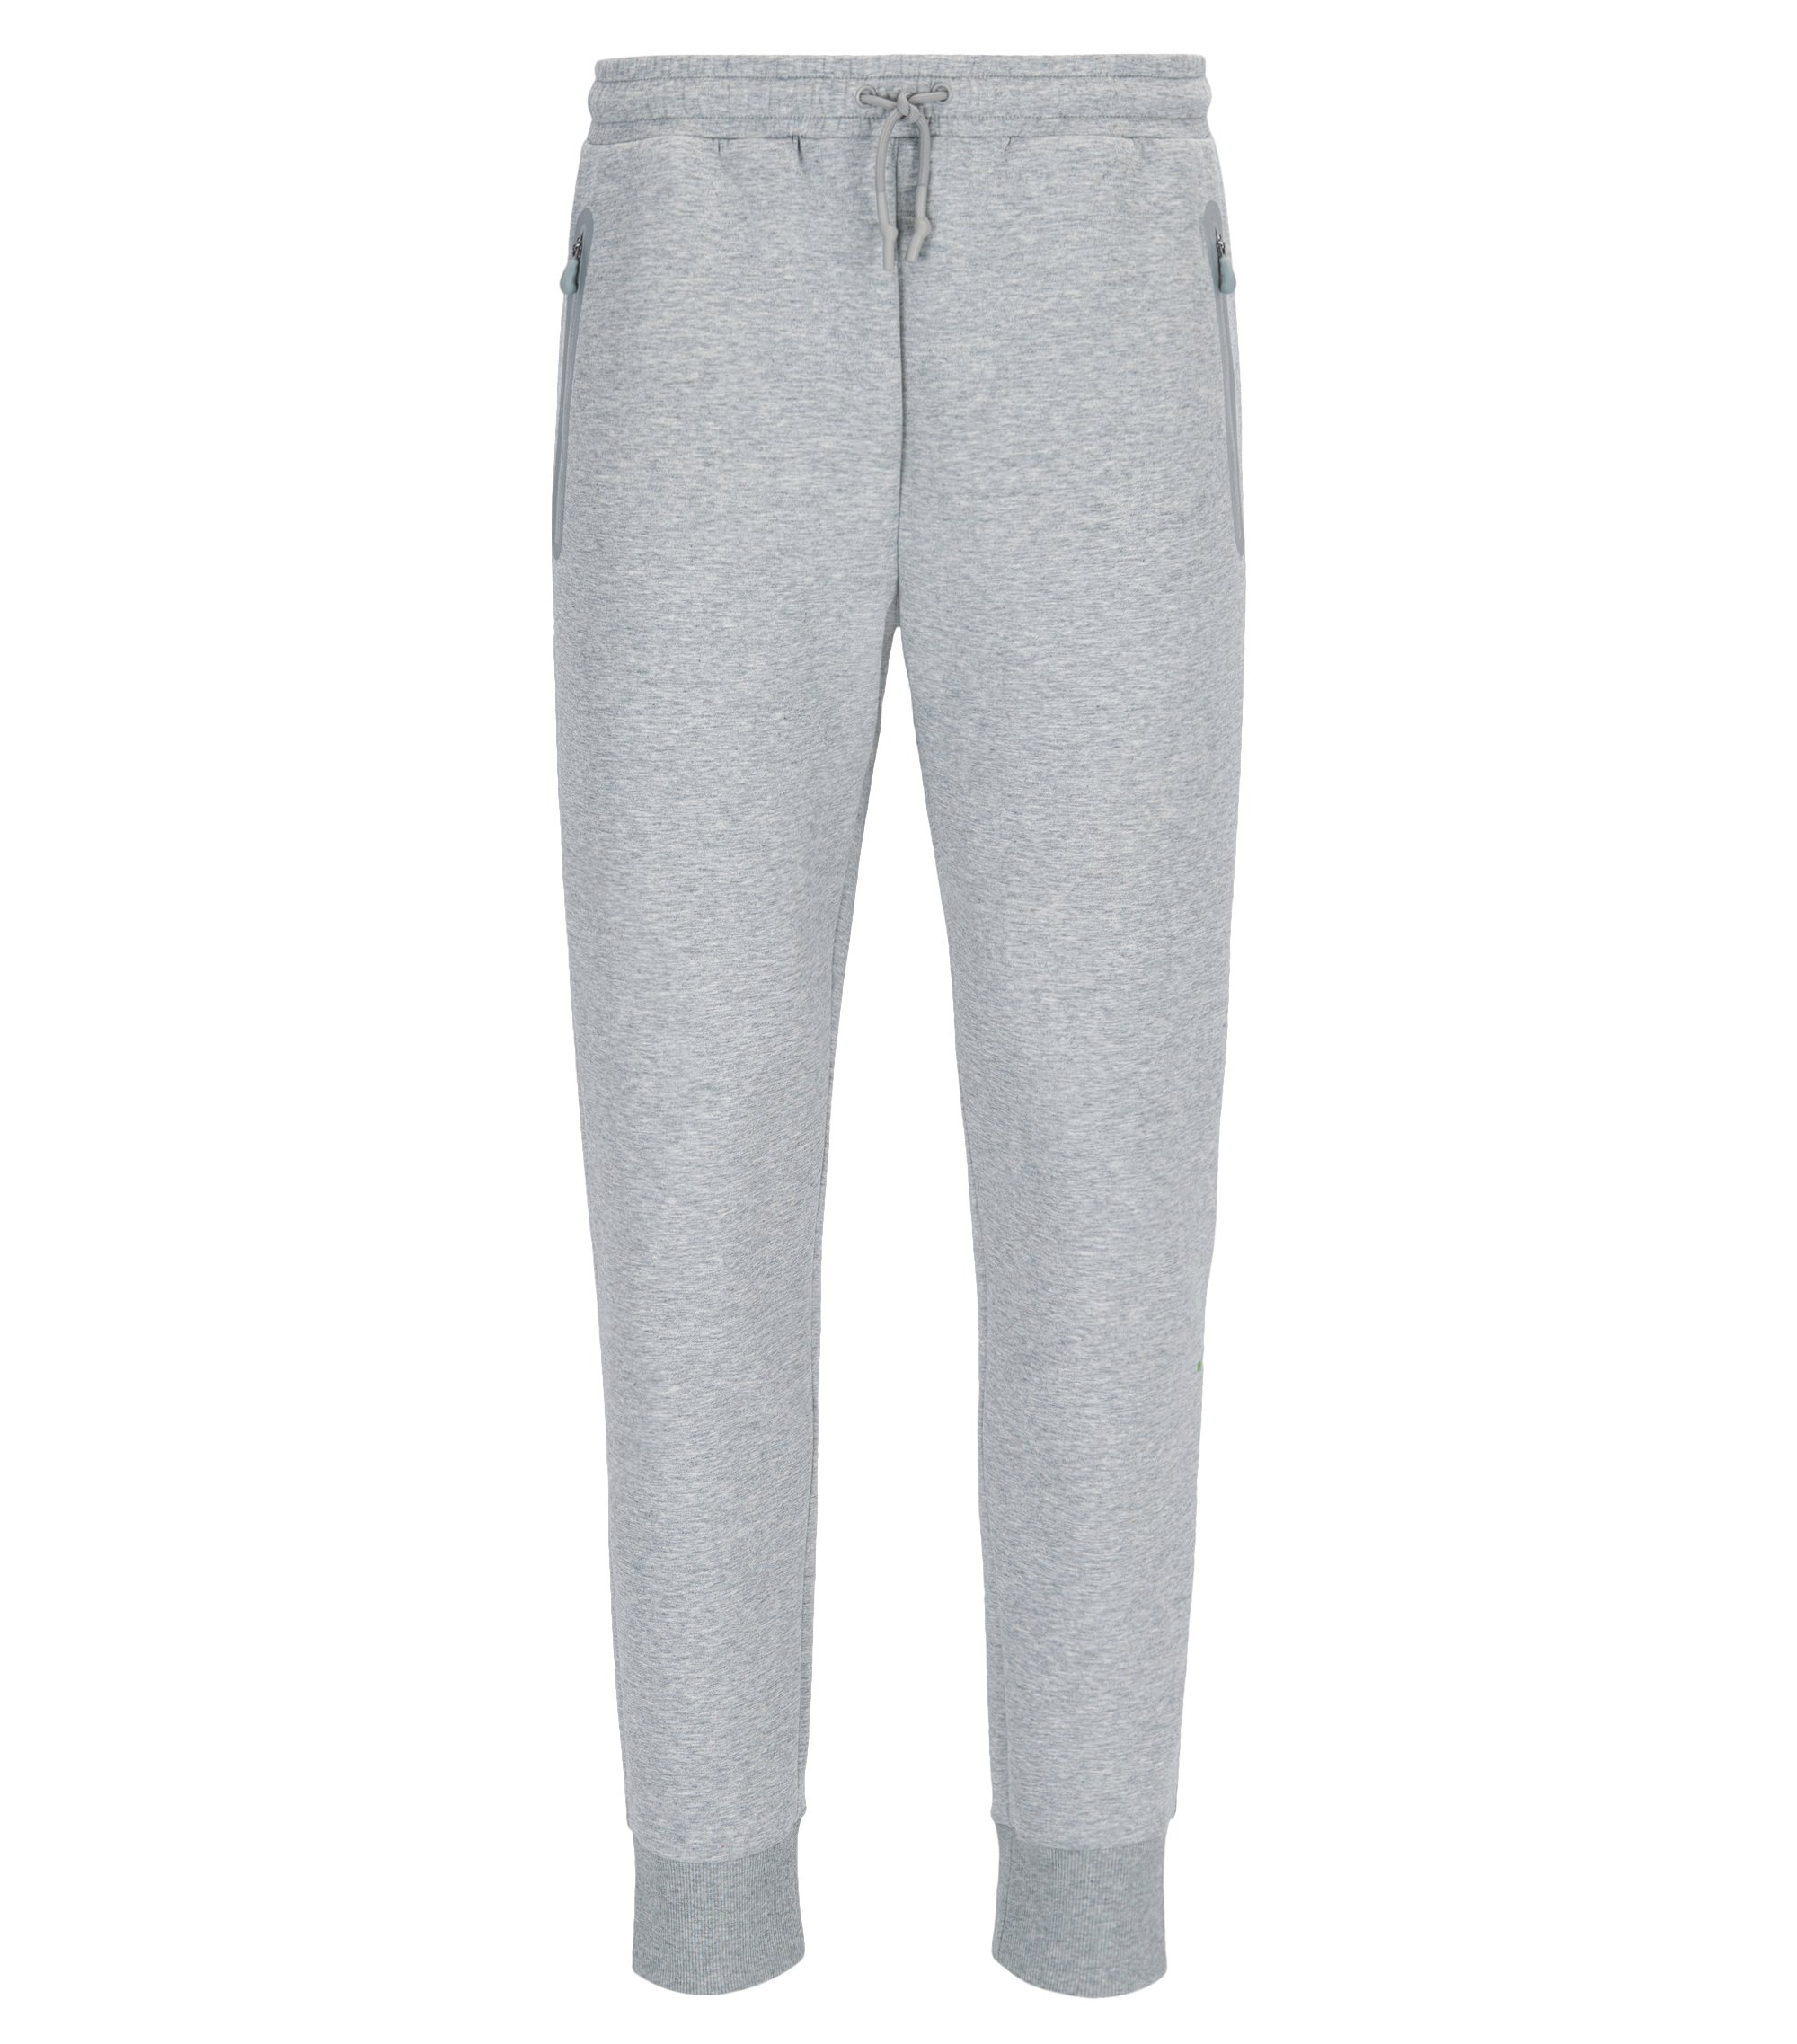 Slim-fit cuffed jogging bottoms in a cotton blend, Light Grey